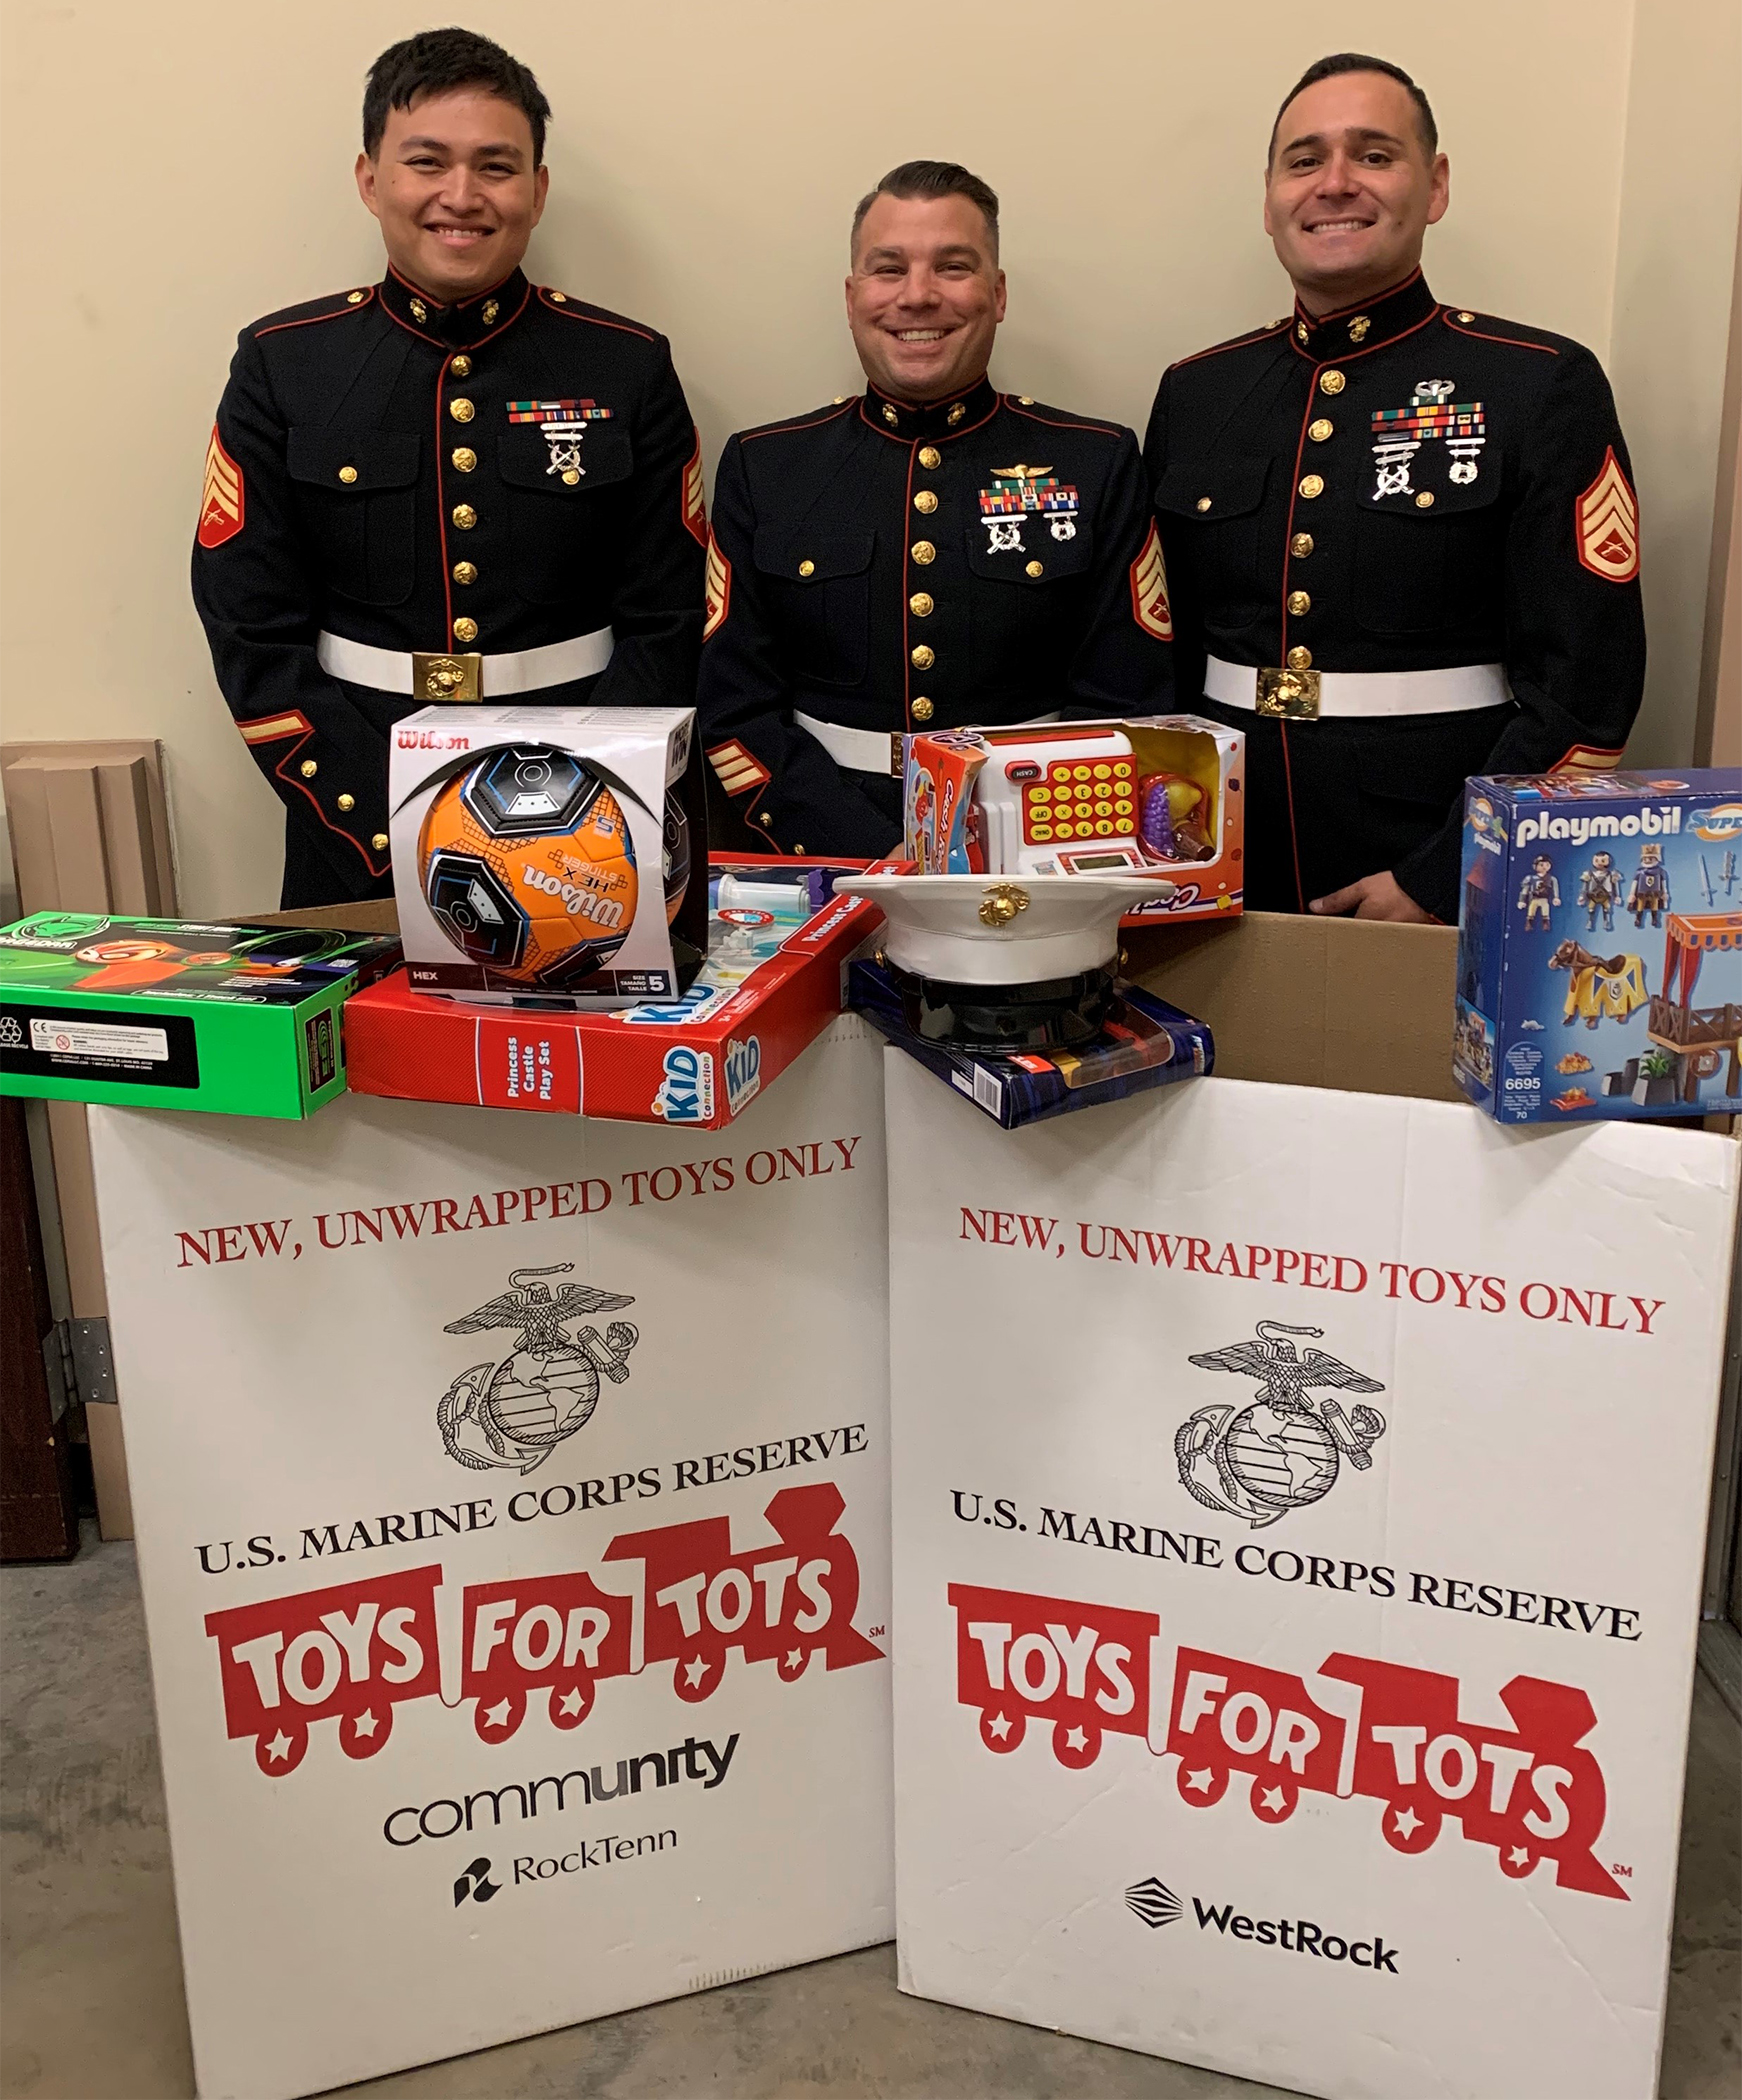 Toys for Tots US Marines in dress blues